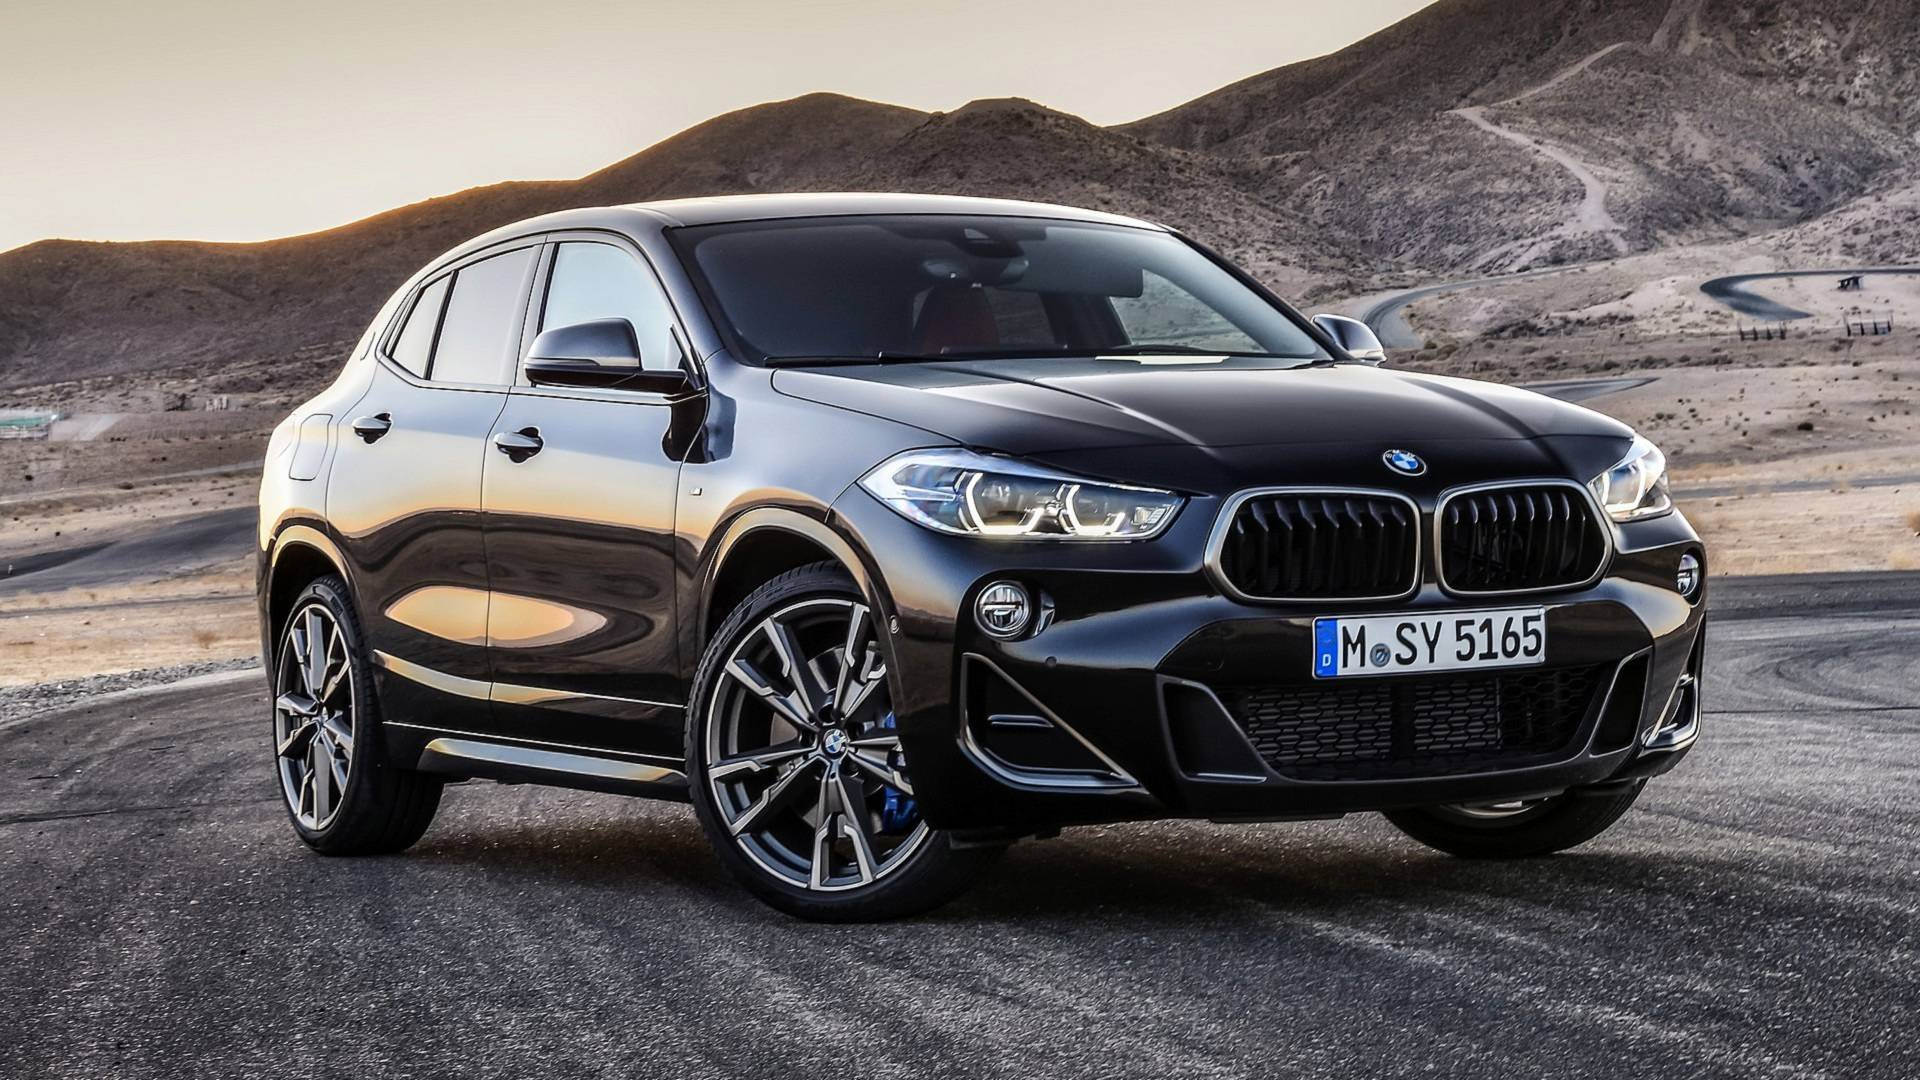 Bmw X2 M35i Climbs On Top Of The Range With 302 Horsepower